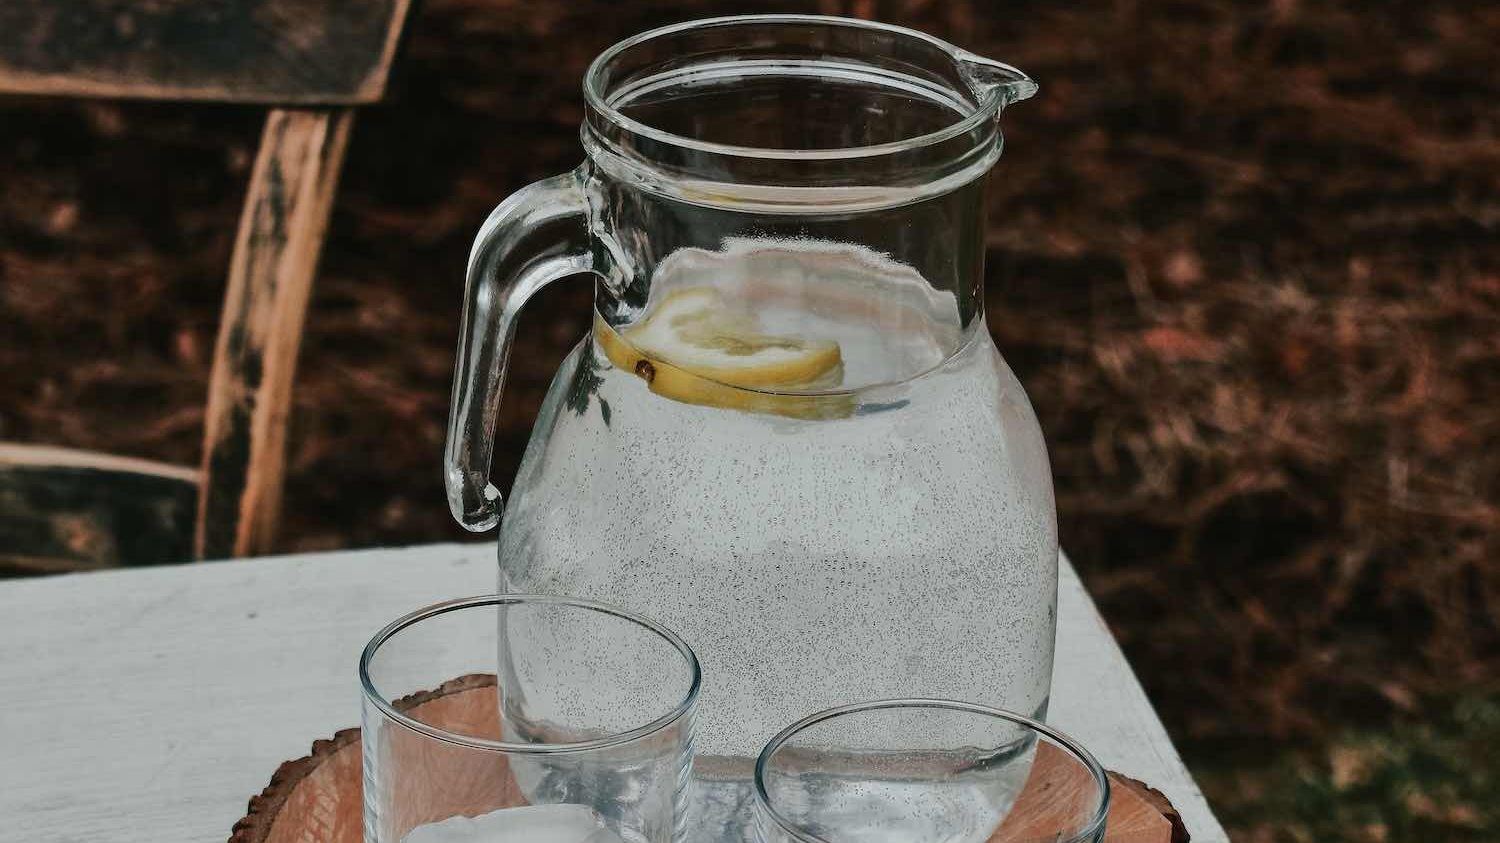 A water jug with glasses full of ice